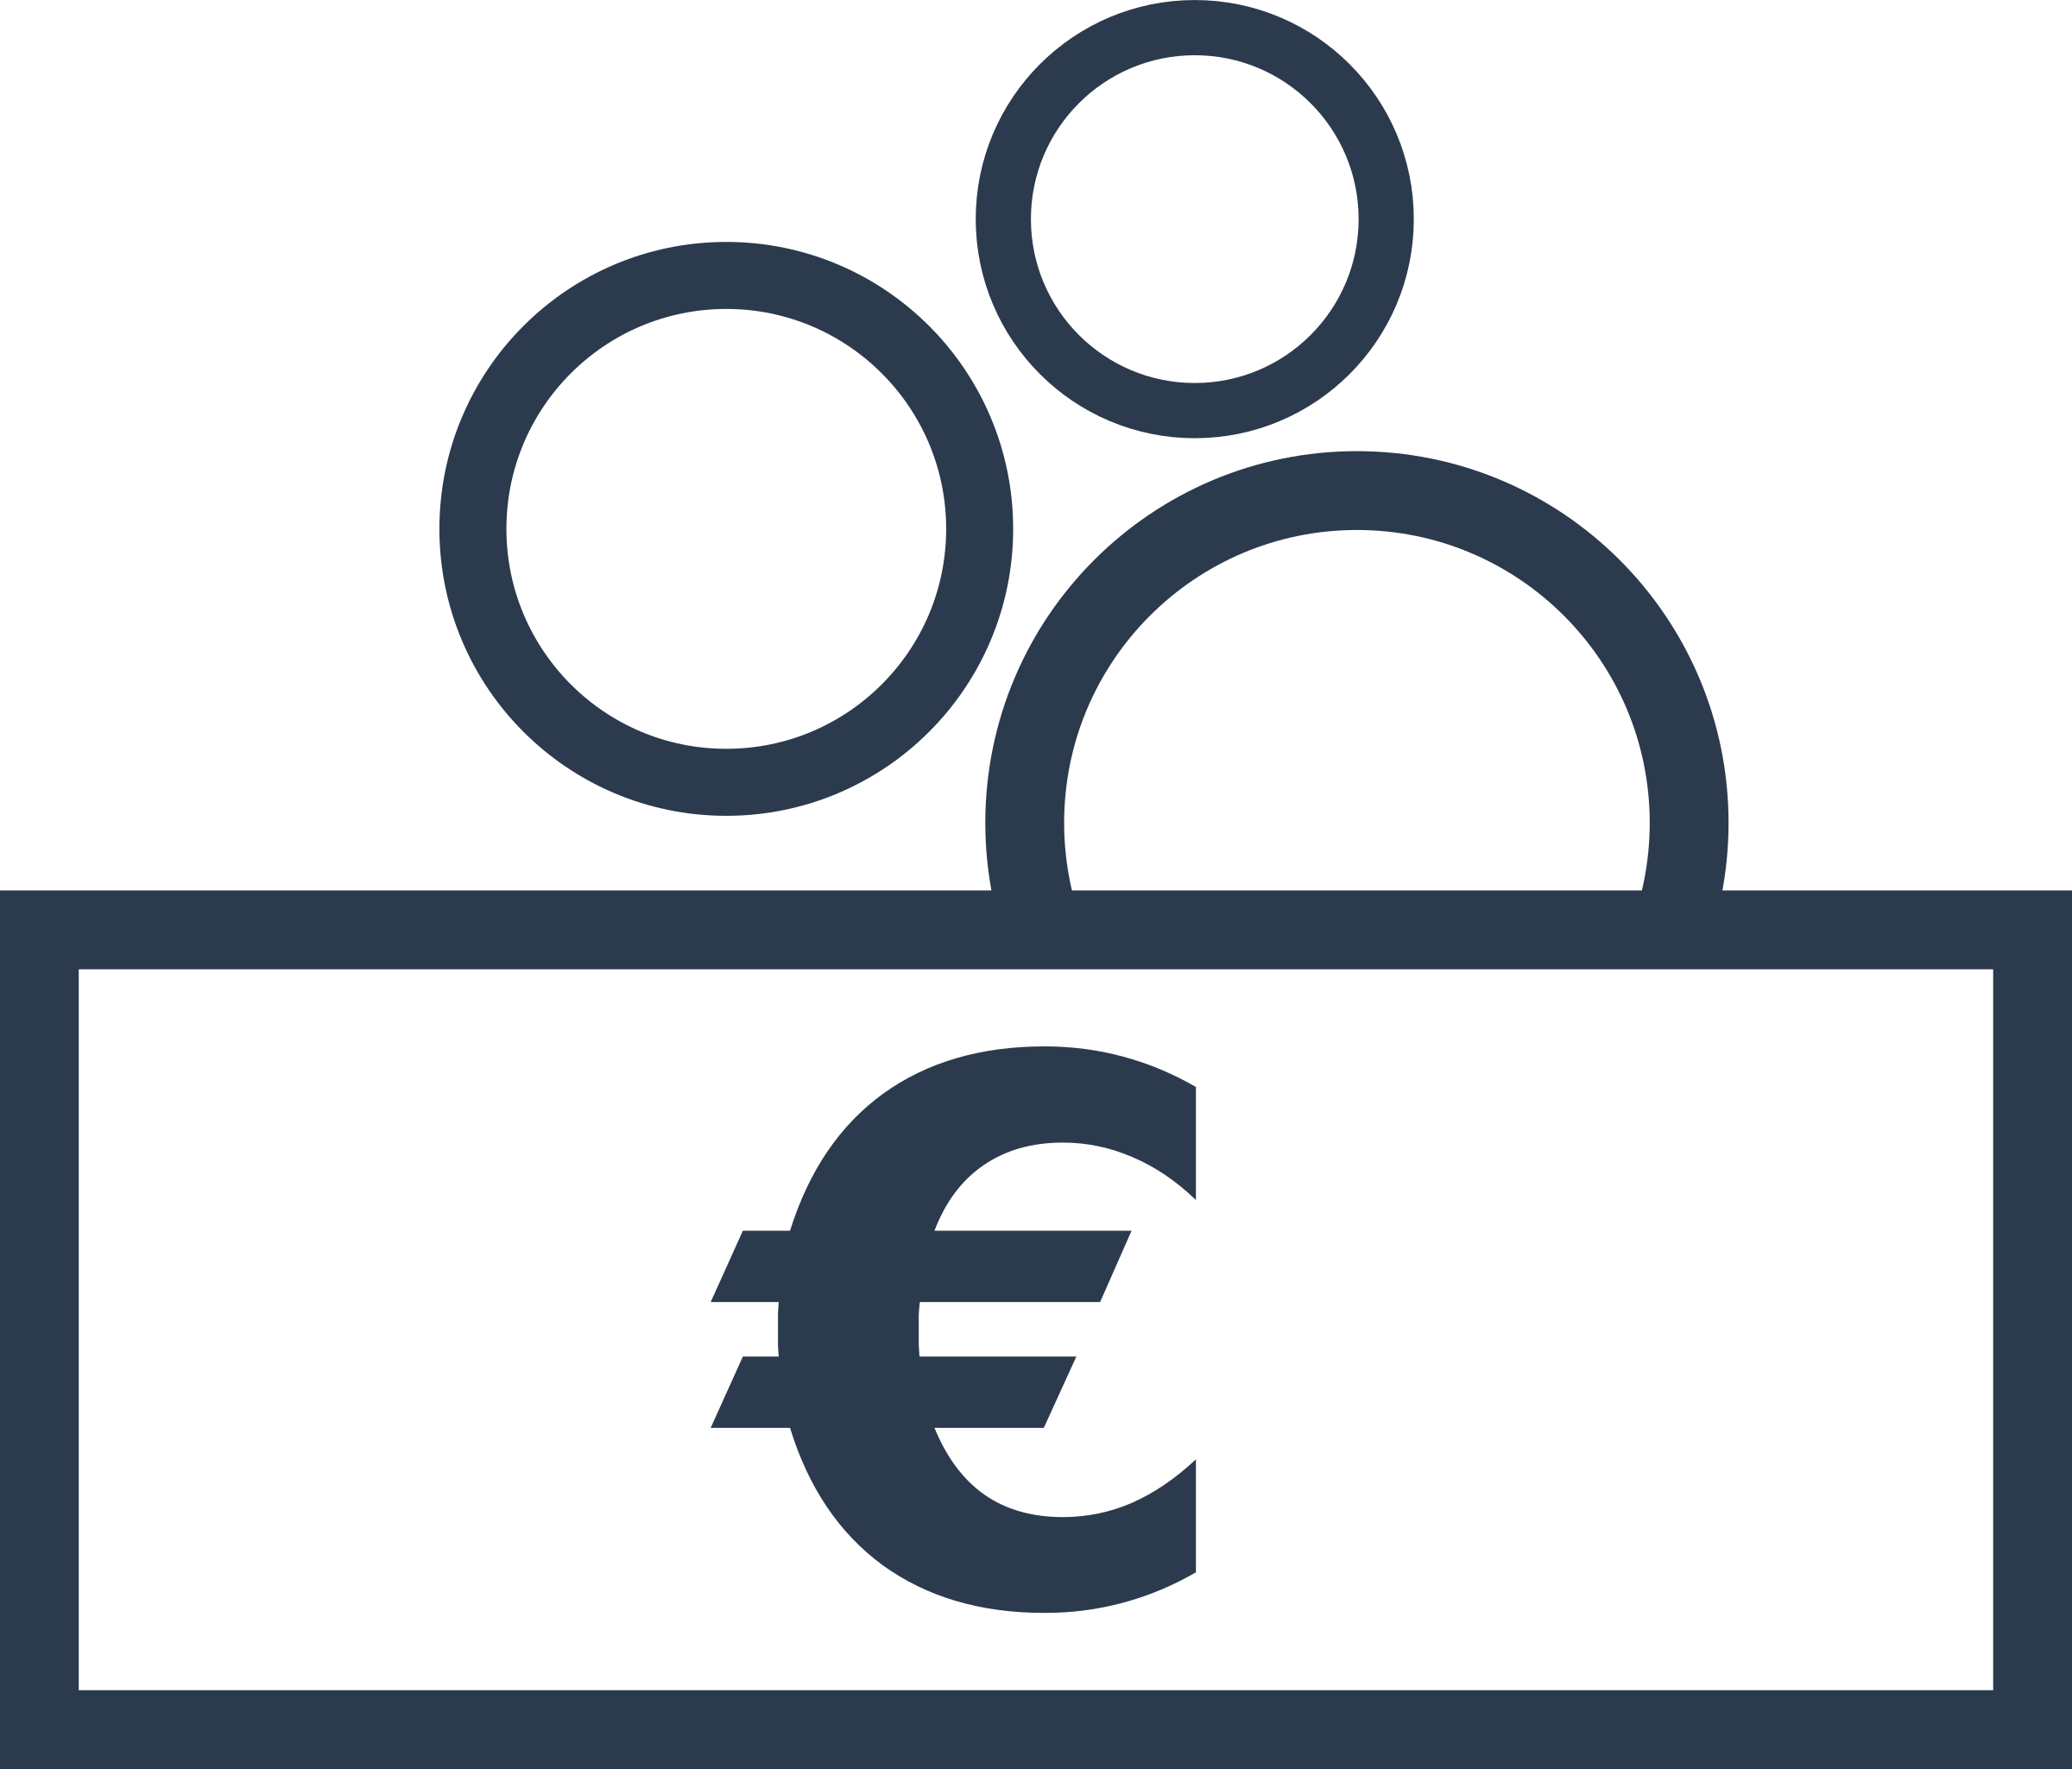 Free clipart money symbols picture black and white download money symbol Icons PNG - Free PNG and Icons Downloads picture black and white download